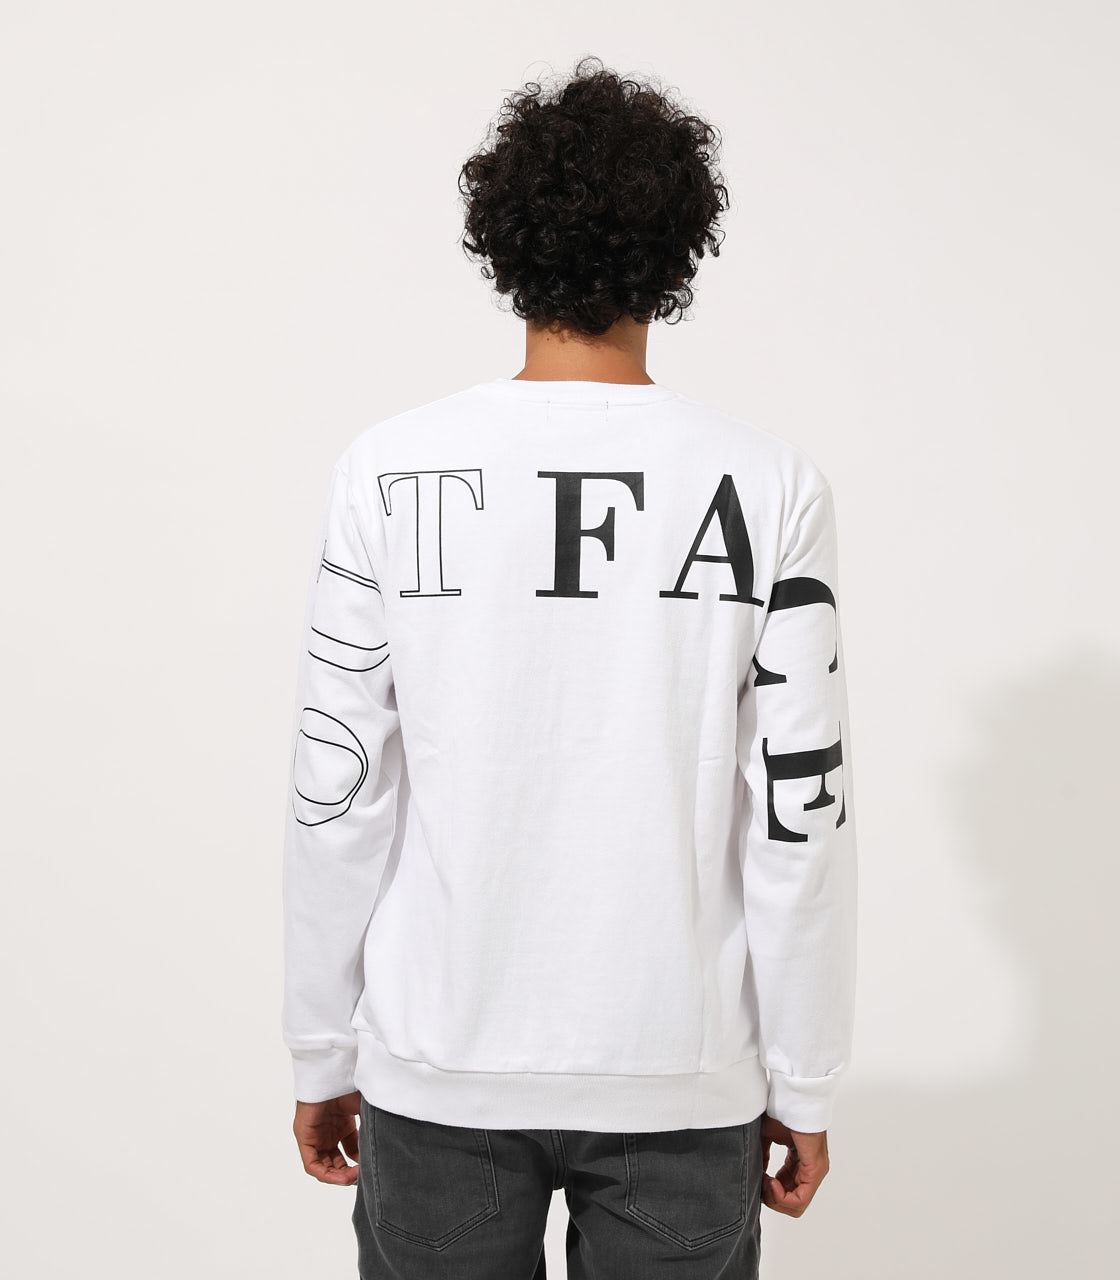 OUTFACE PRINT PULLOVER/アウトフェイスプリントプルオーバー 詳細画像 WHT 6